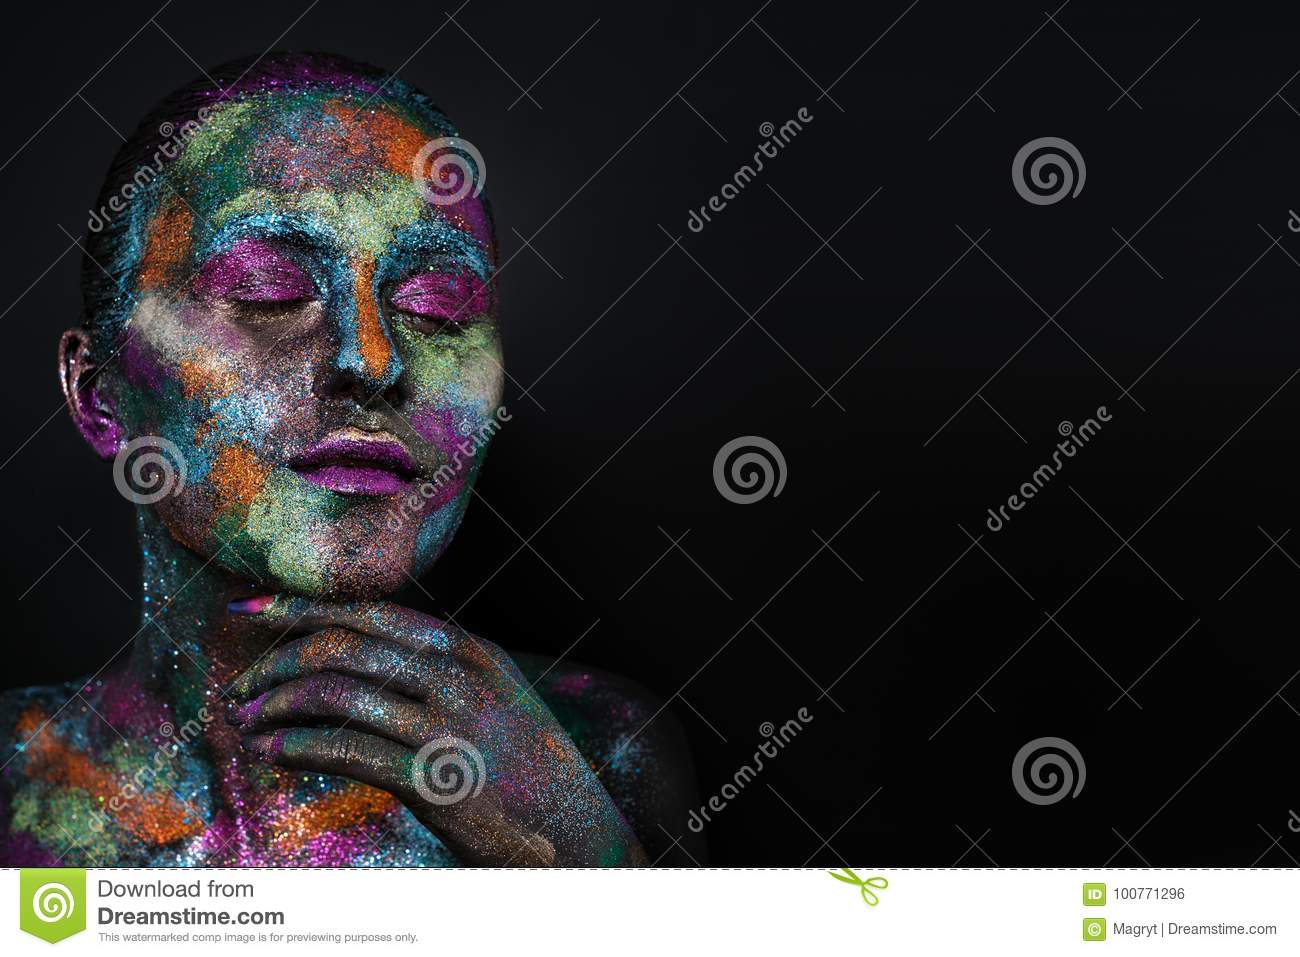 Young Artistic Woman In Black Paint And Colourful Powder Glowing Dark Makeup Creative Body Art On The Theme Of Space Stock Photo Image Of Artistic Design 100771296